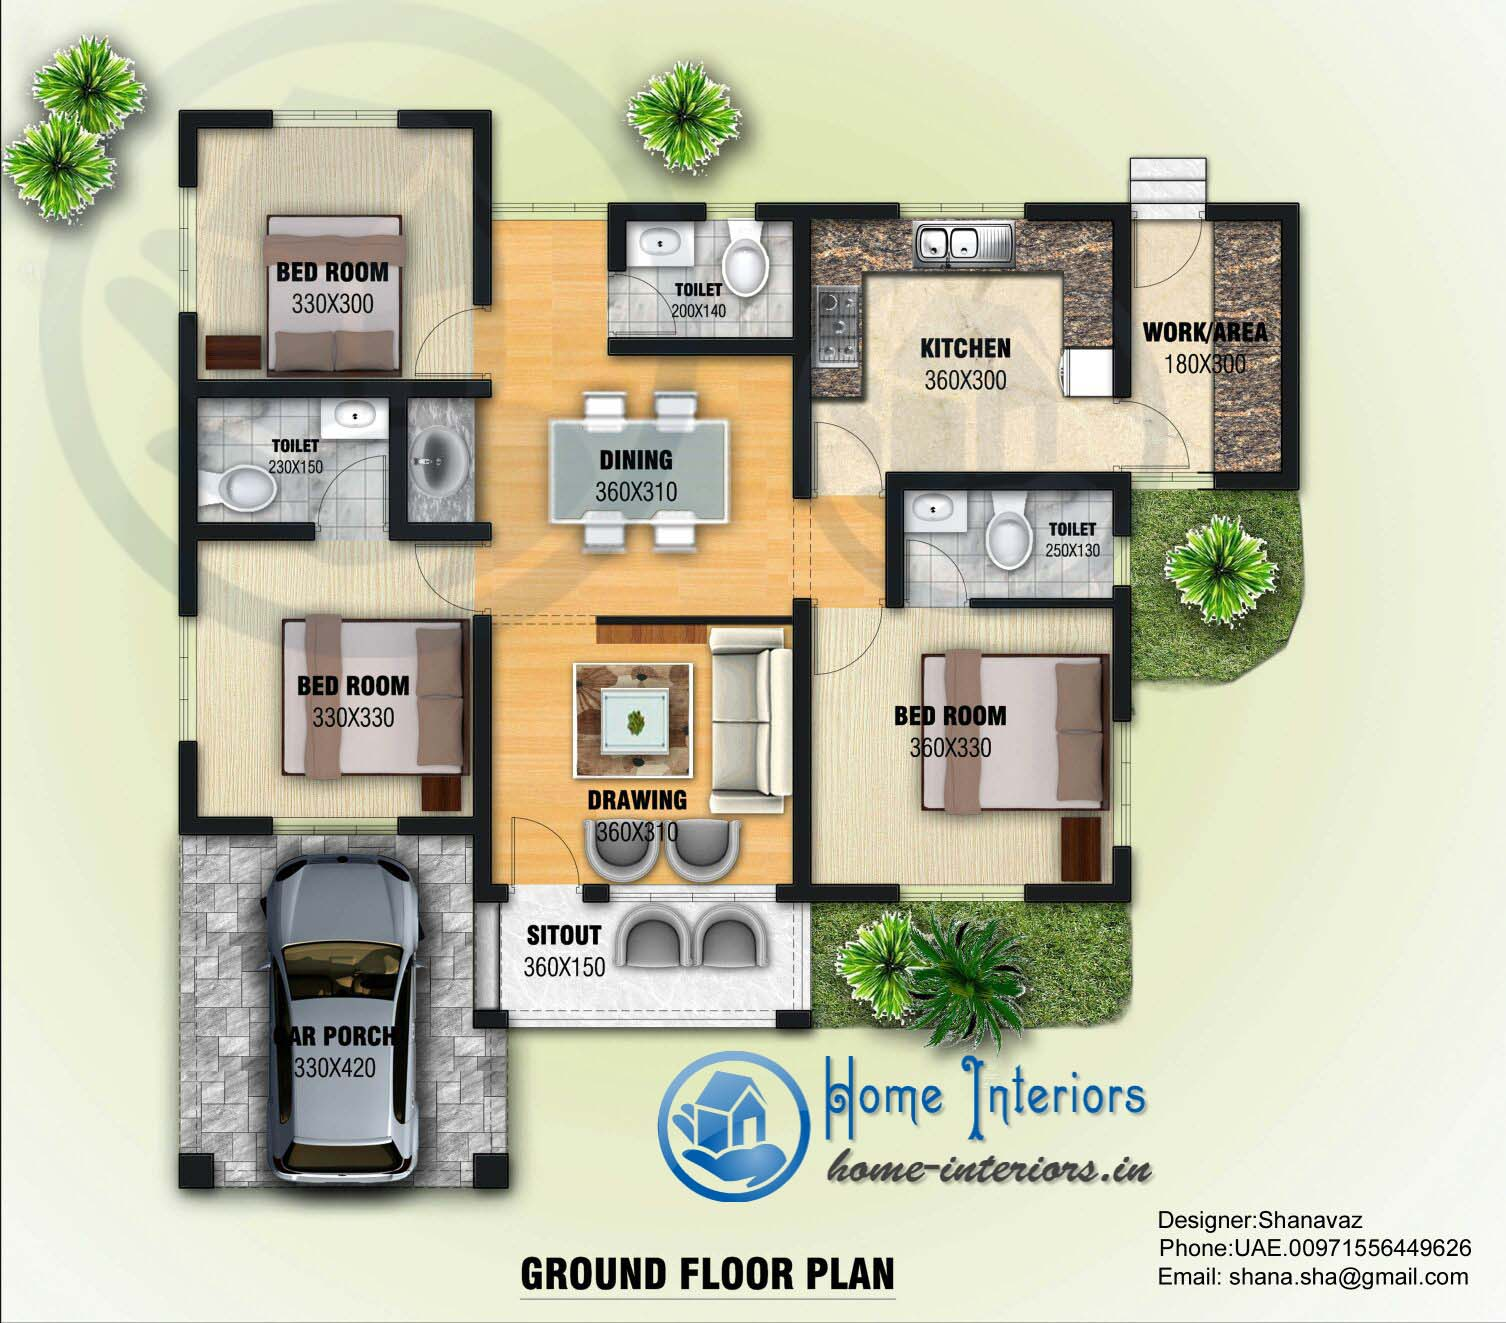 Modern Kerala Home Design: Small Plot 3 Bedroom Single Floor House In Kerala With